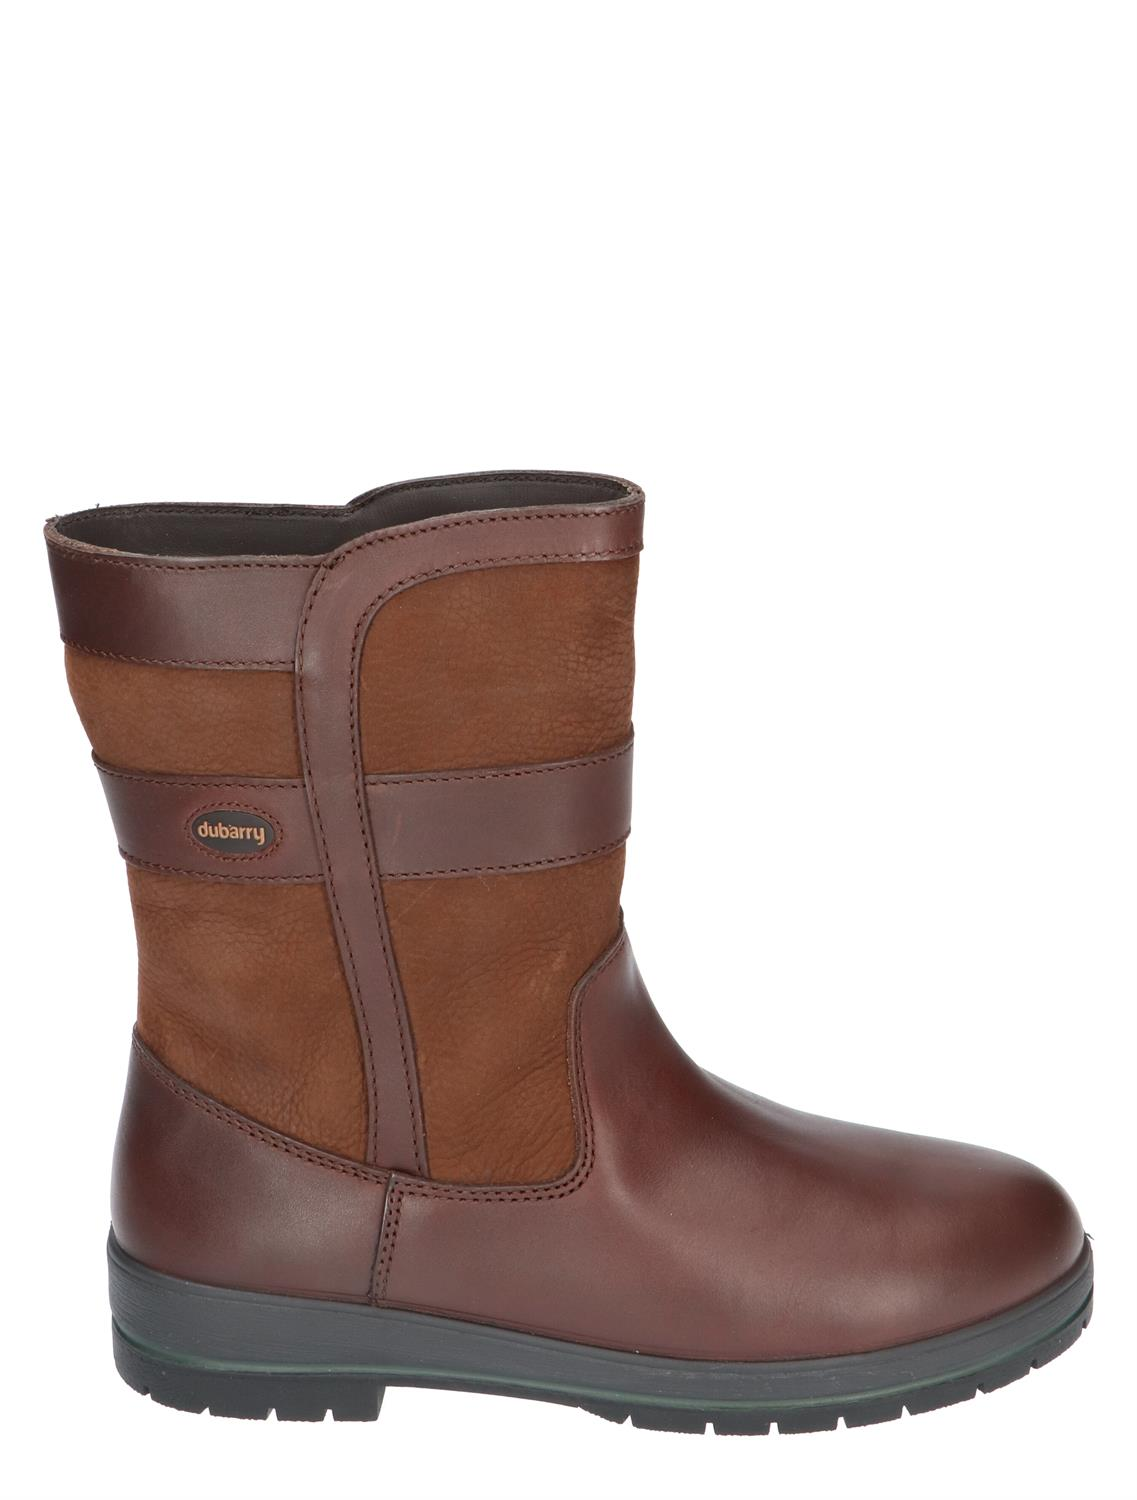 Roscommon Boot Walnut Dubarry Regenlaarzen Nolten OZiPkXu